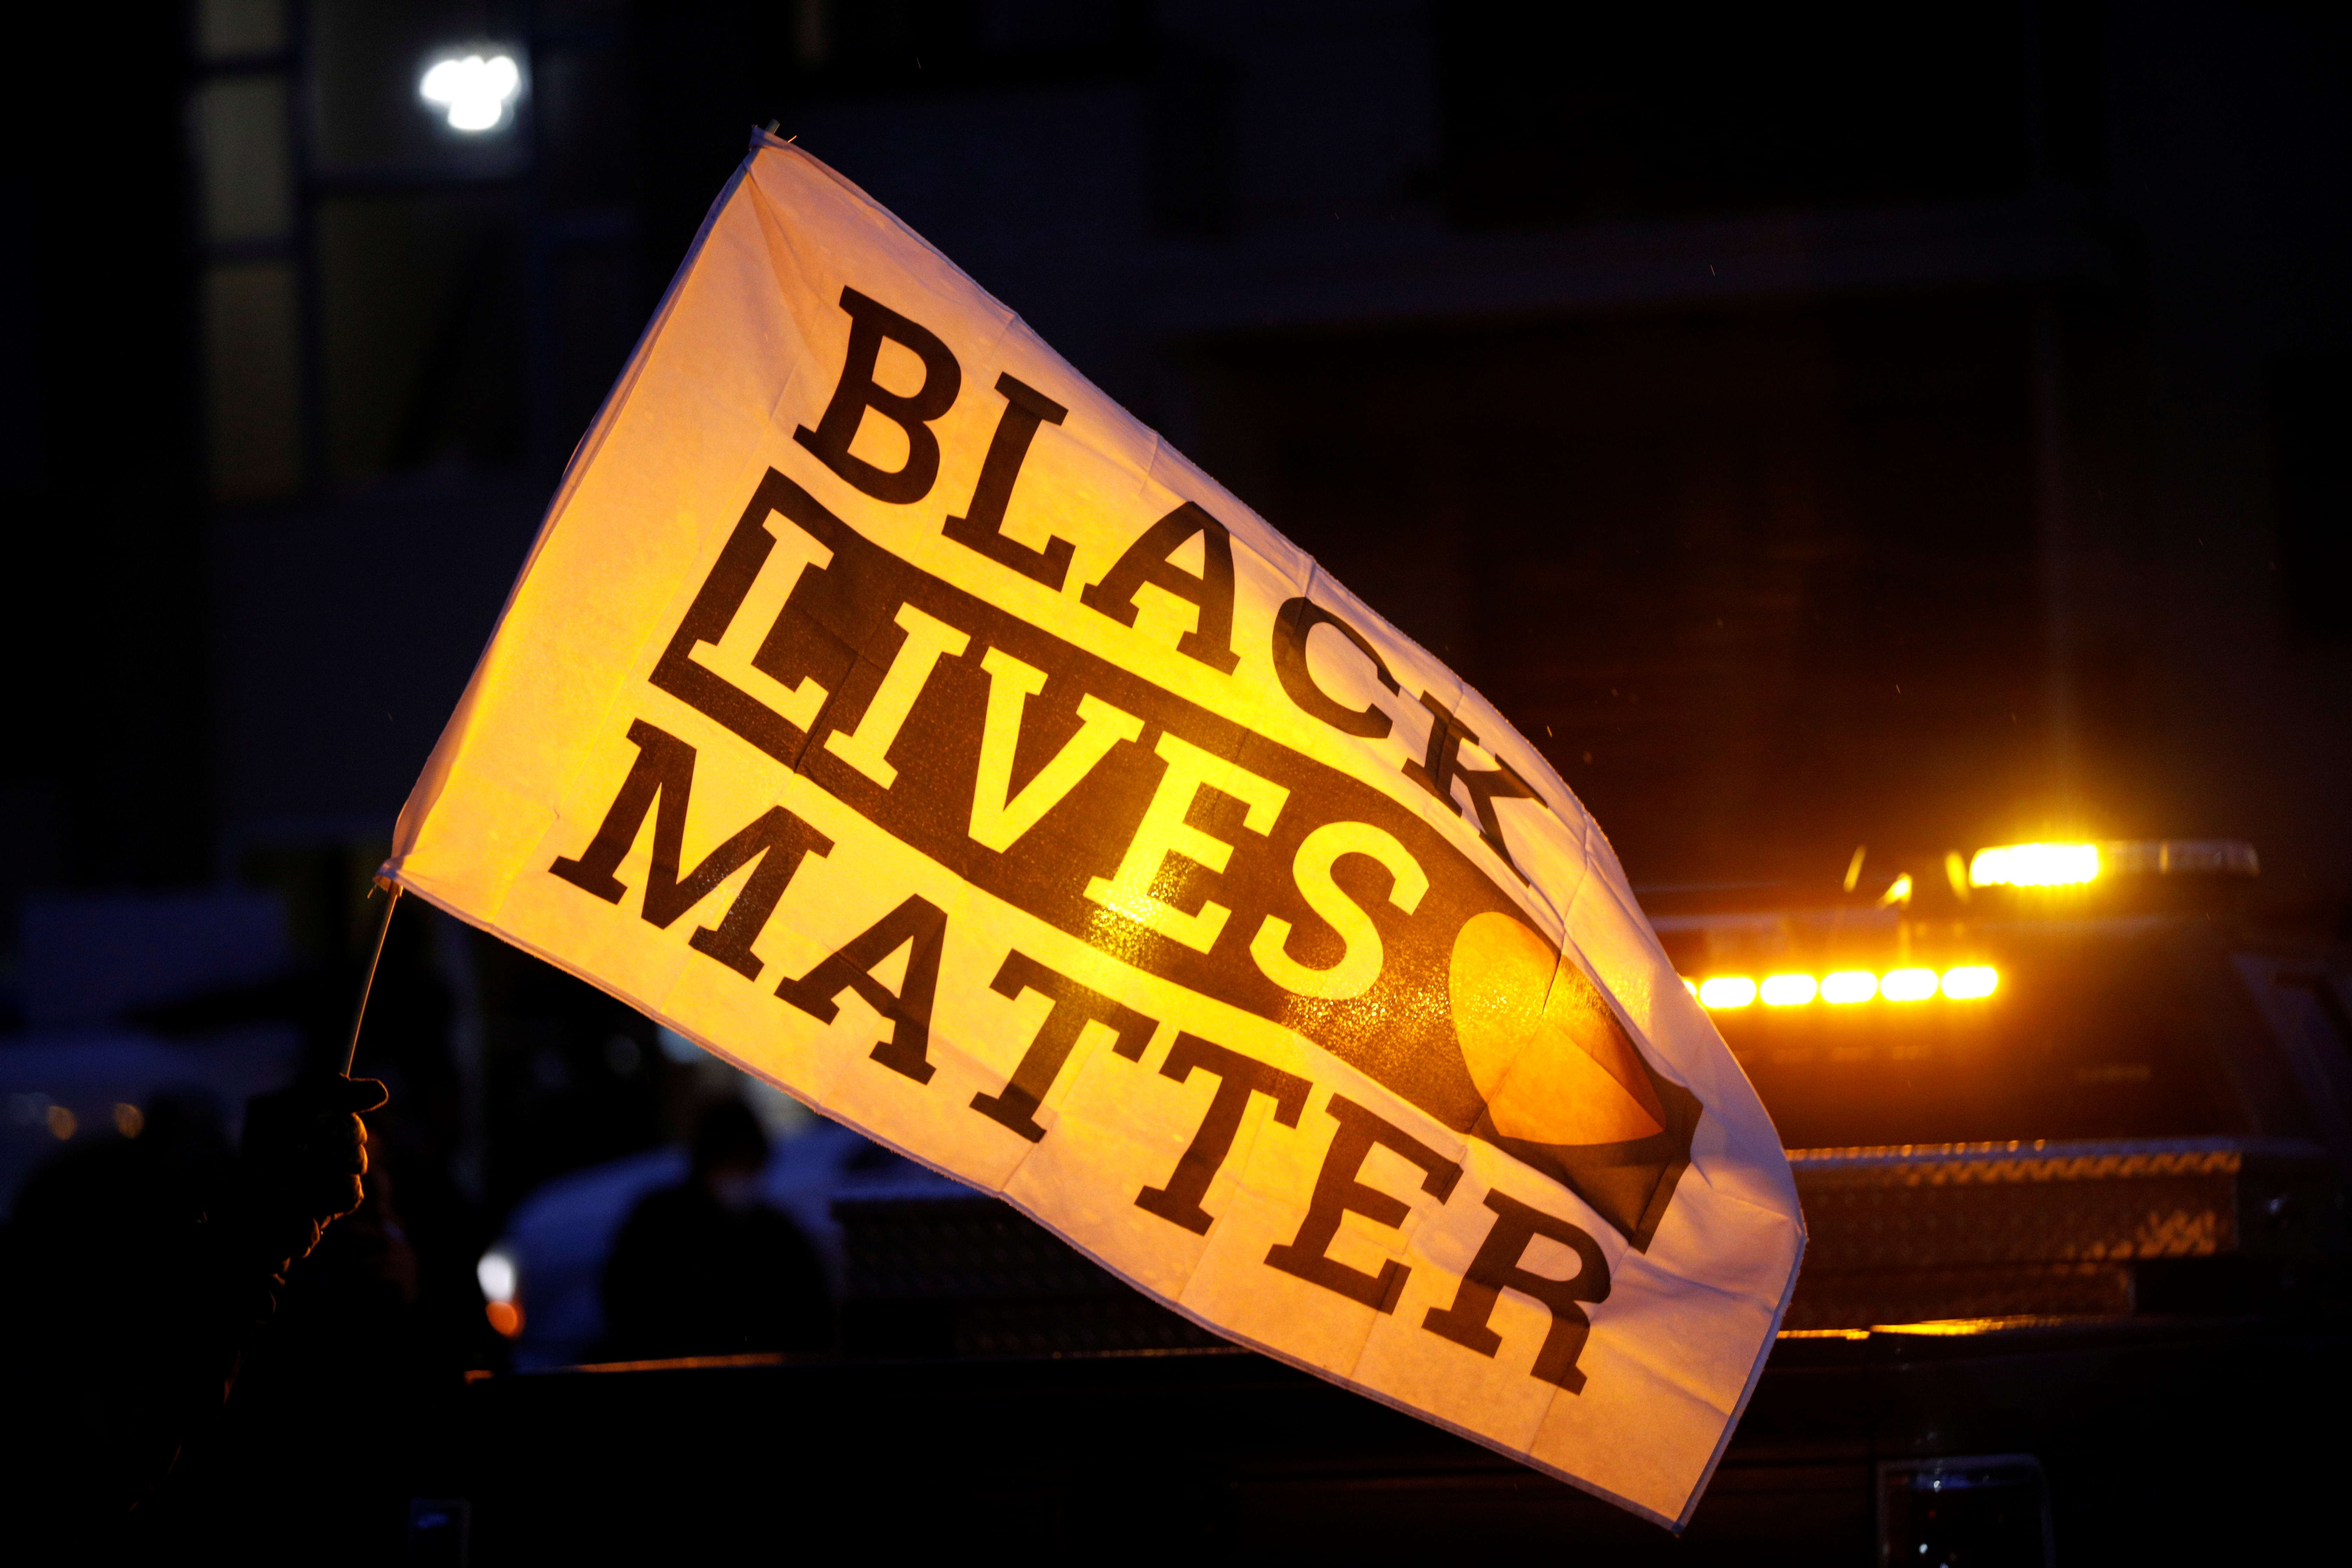 A protester holds a Black Lives Matter flag outside the Brooklyn Center Police Department, as protests continue days after former police officer Kim Potter fatally shot Daunte Wright, in Brooklyn Center, Minnesota, U.S. April 14, 2021. REUTERS/Nick Pfosi